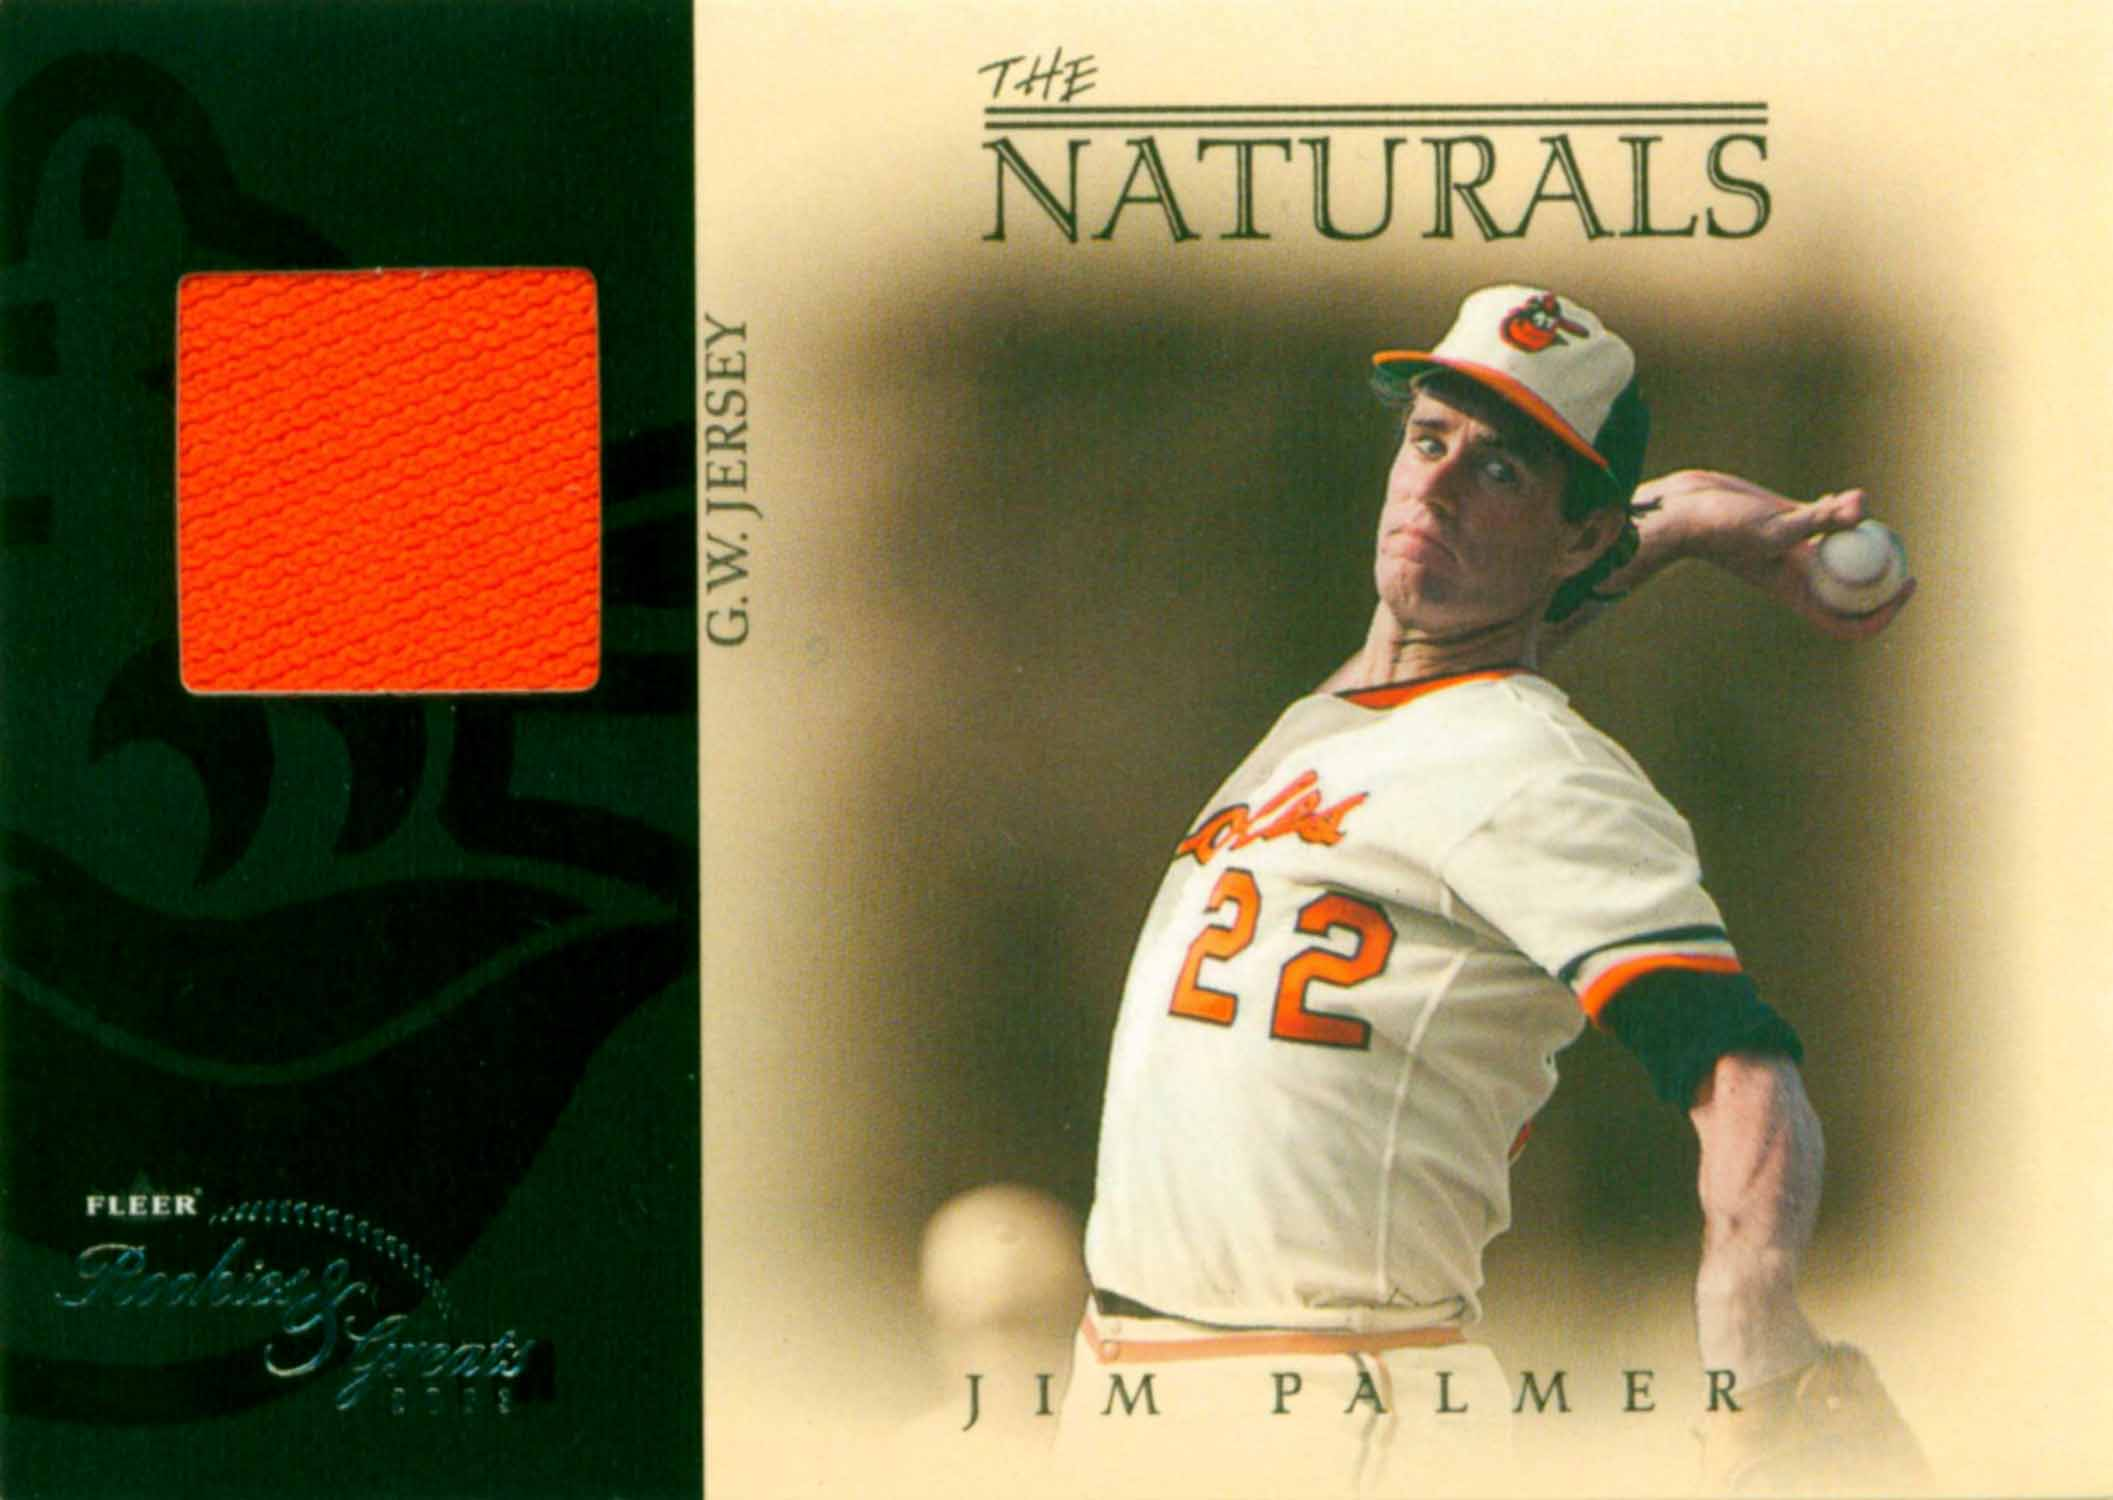 2003 Fleer Rookies and Greats Naturals Game Used Jersey